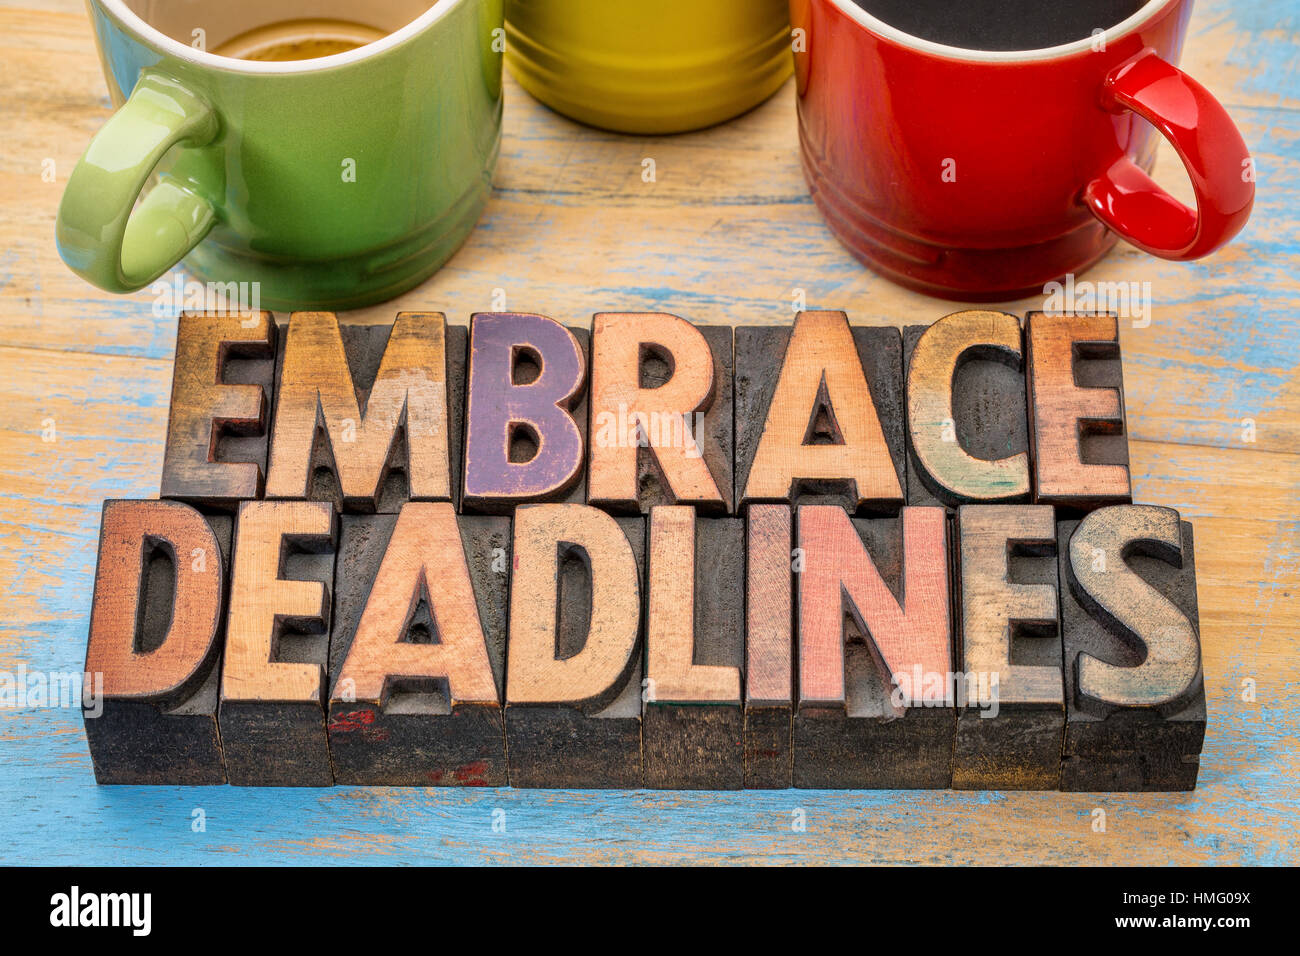 embrace deadlines - word abstract in vintage letterpress wood type blocks with cups of coffee - Stock Image